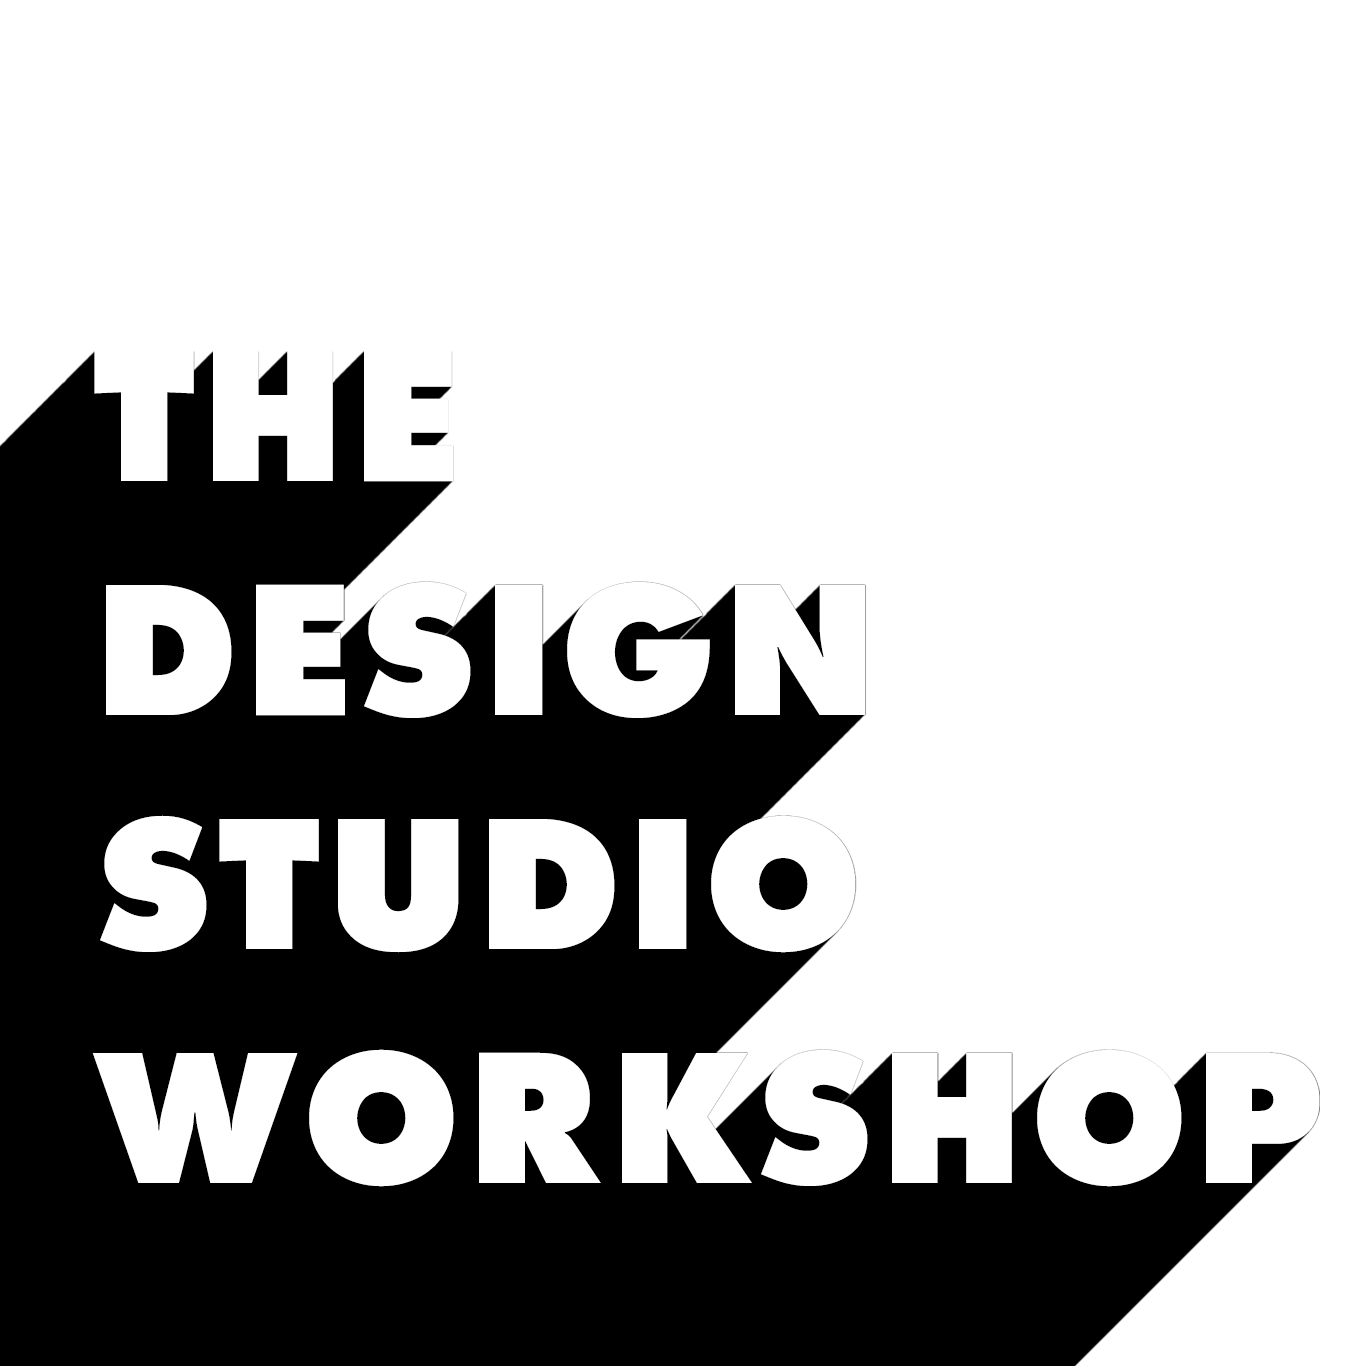 The Design Studio Workshop